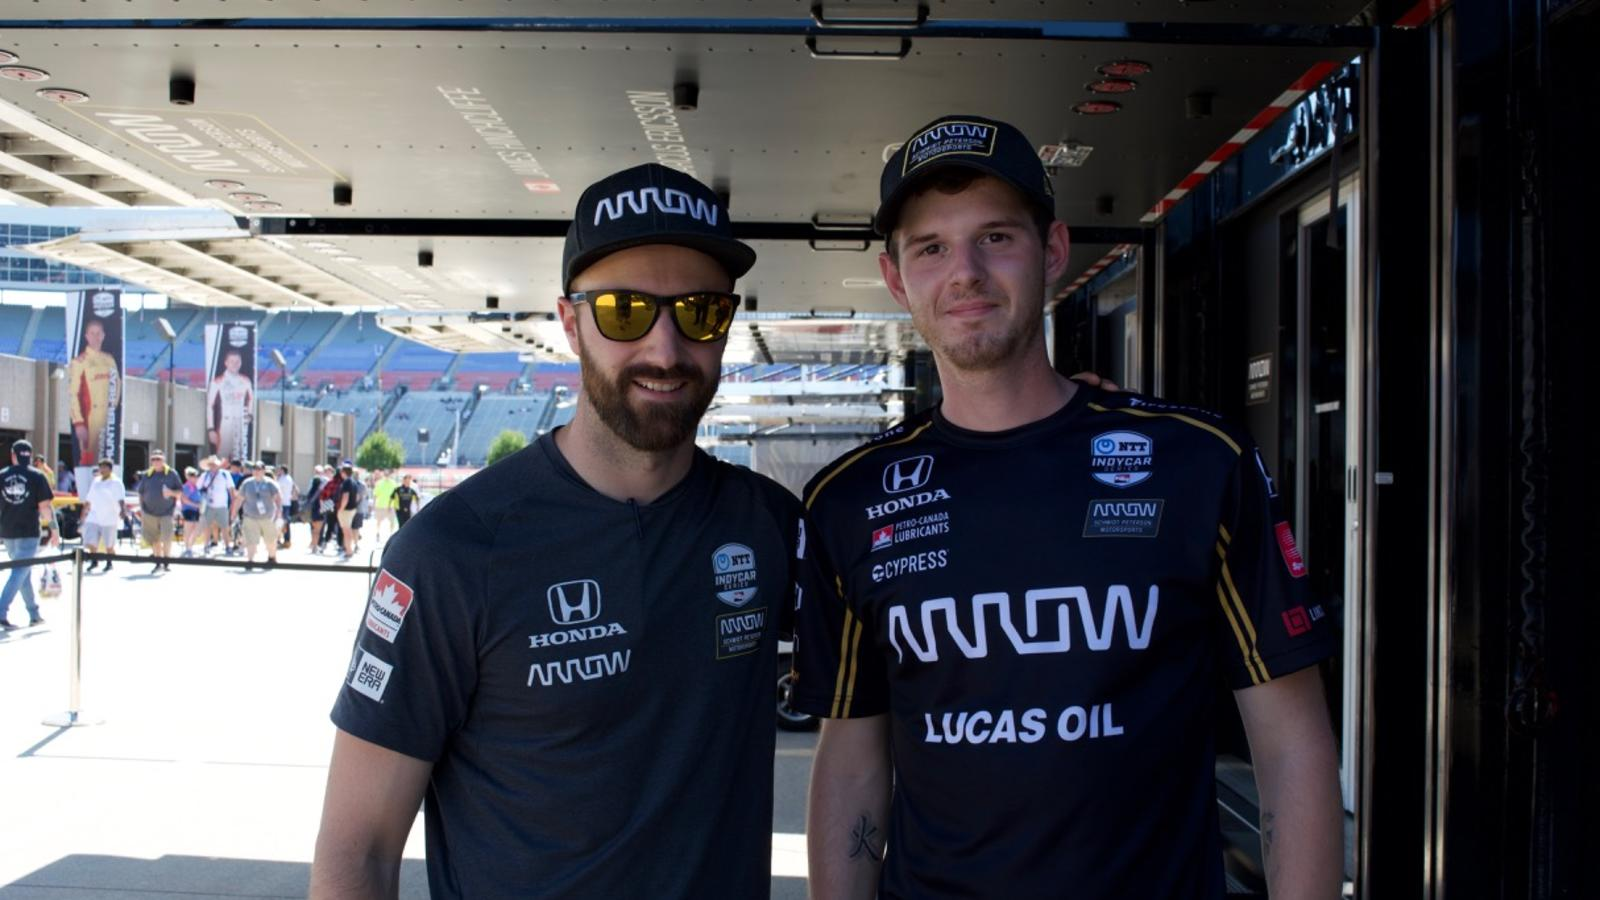 Evan Roberts of the Lincoln Tech Grand Prairie Campus with team driver James Hinchcliffe